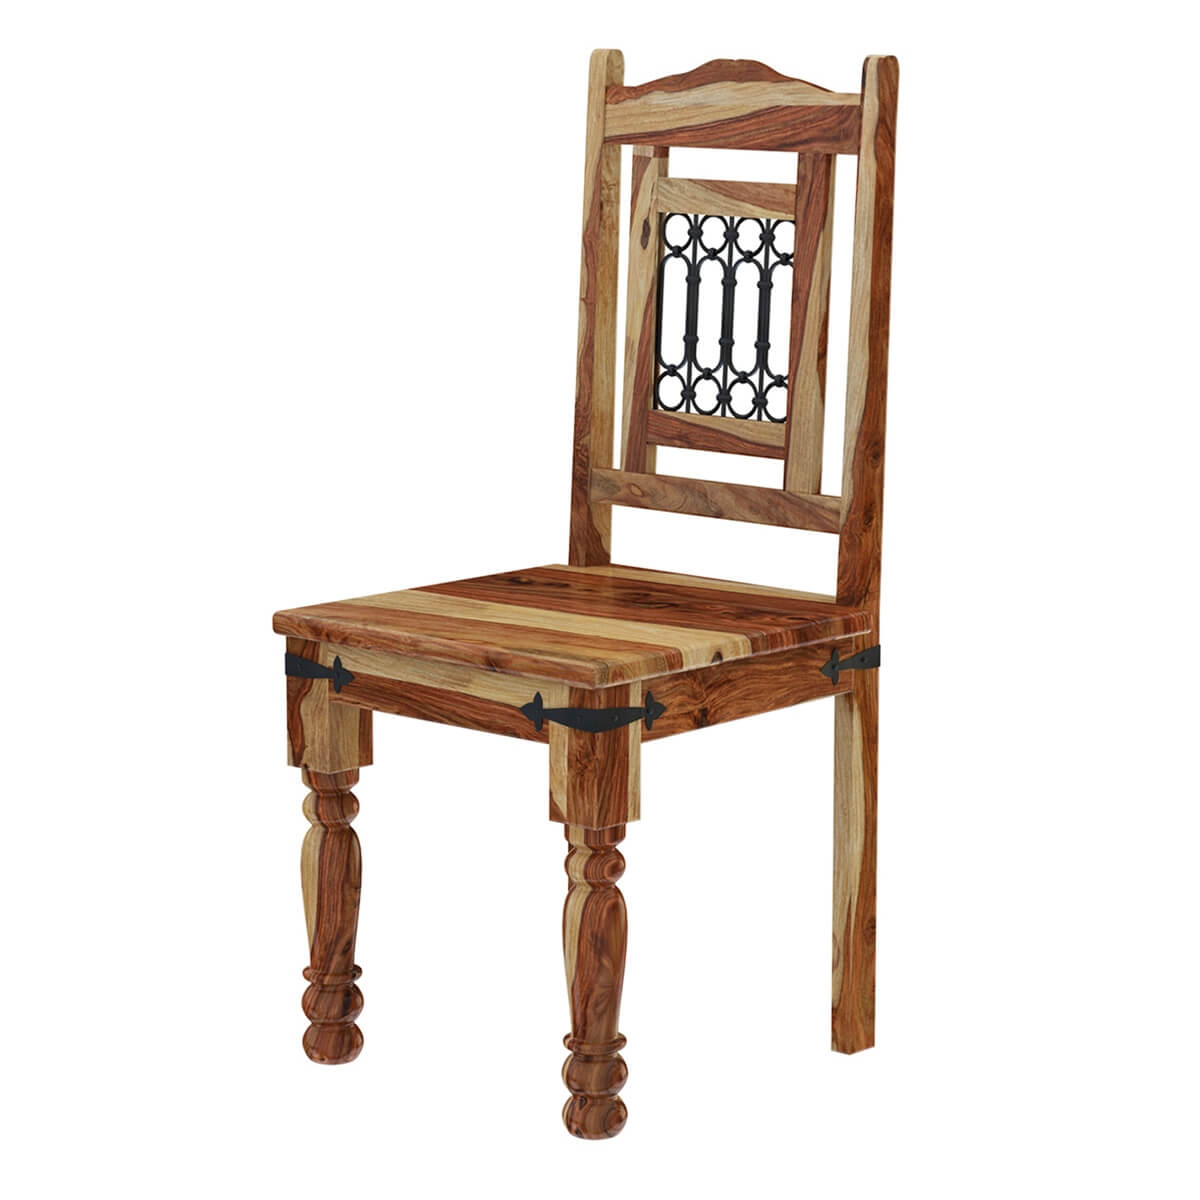 Solid Wood & Wrought Iron Rustic Kitchen Dining Chair